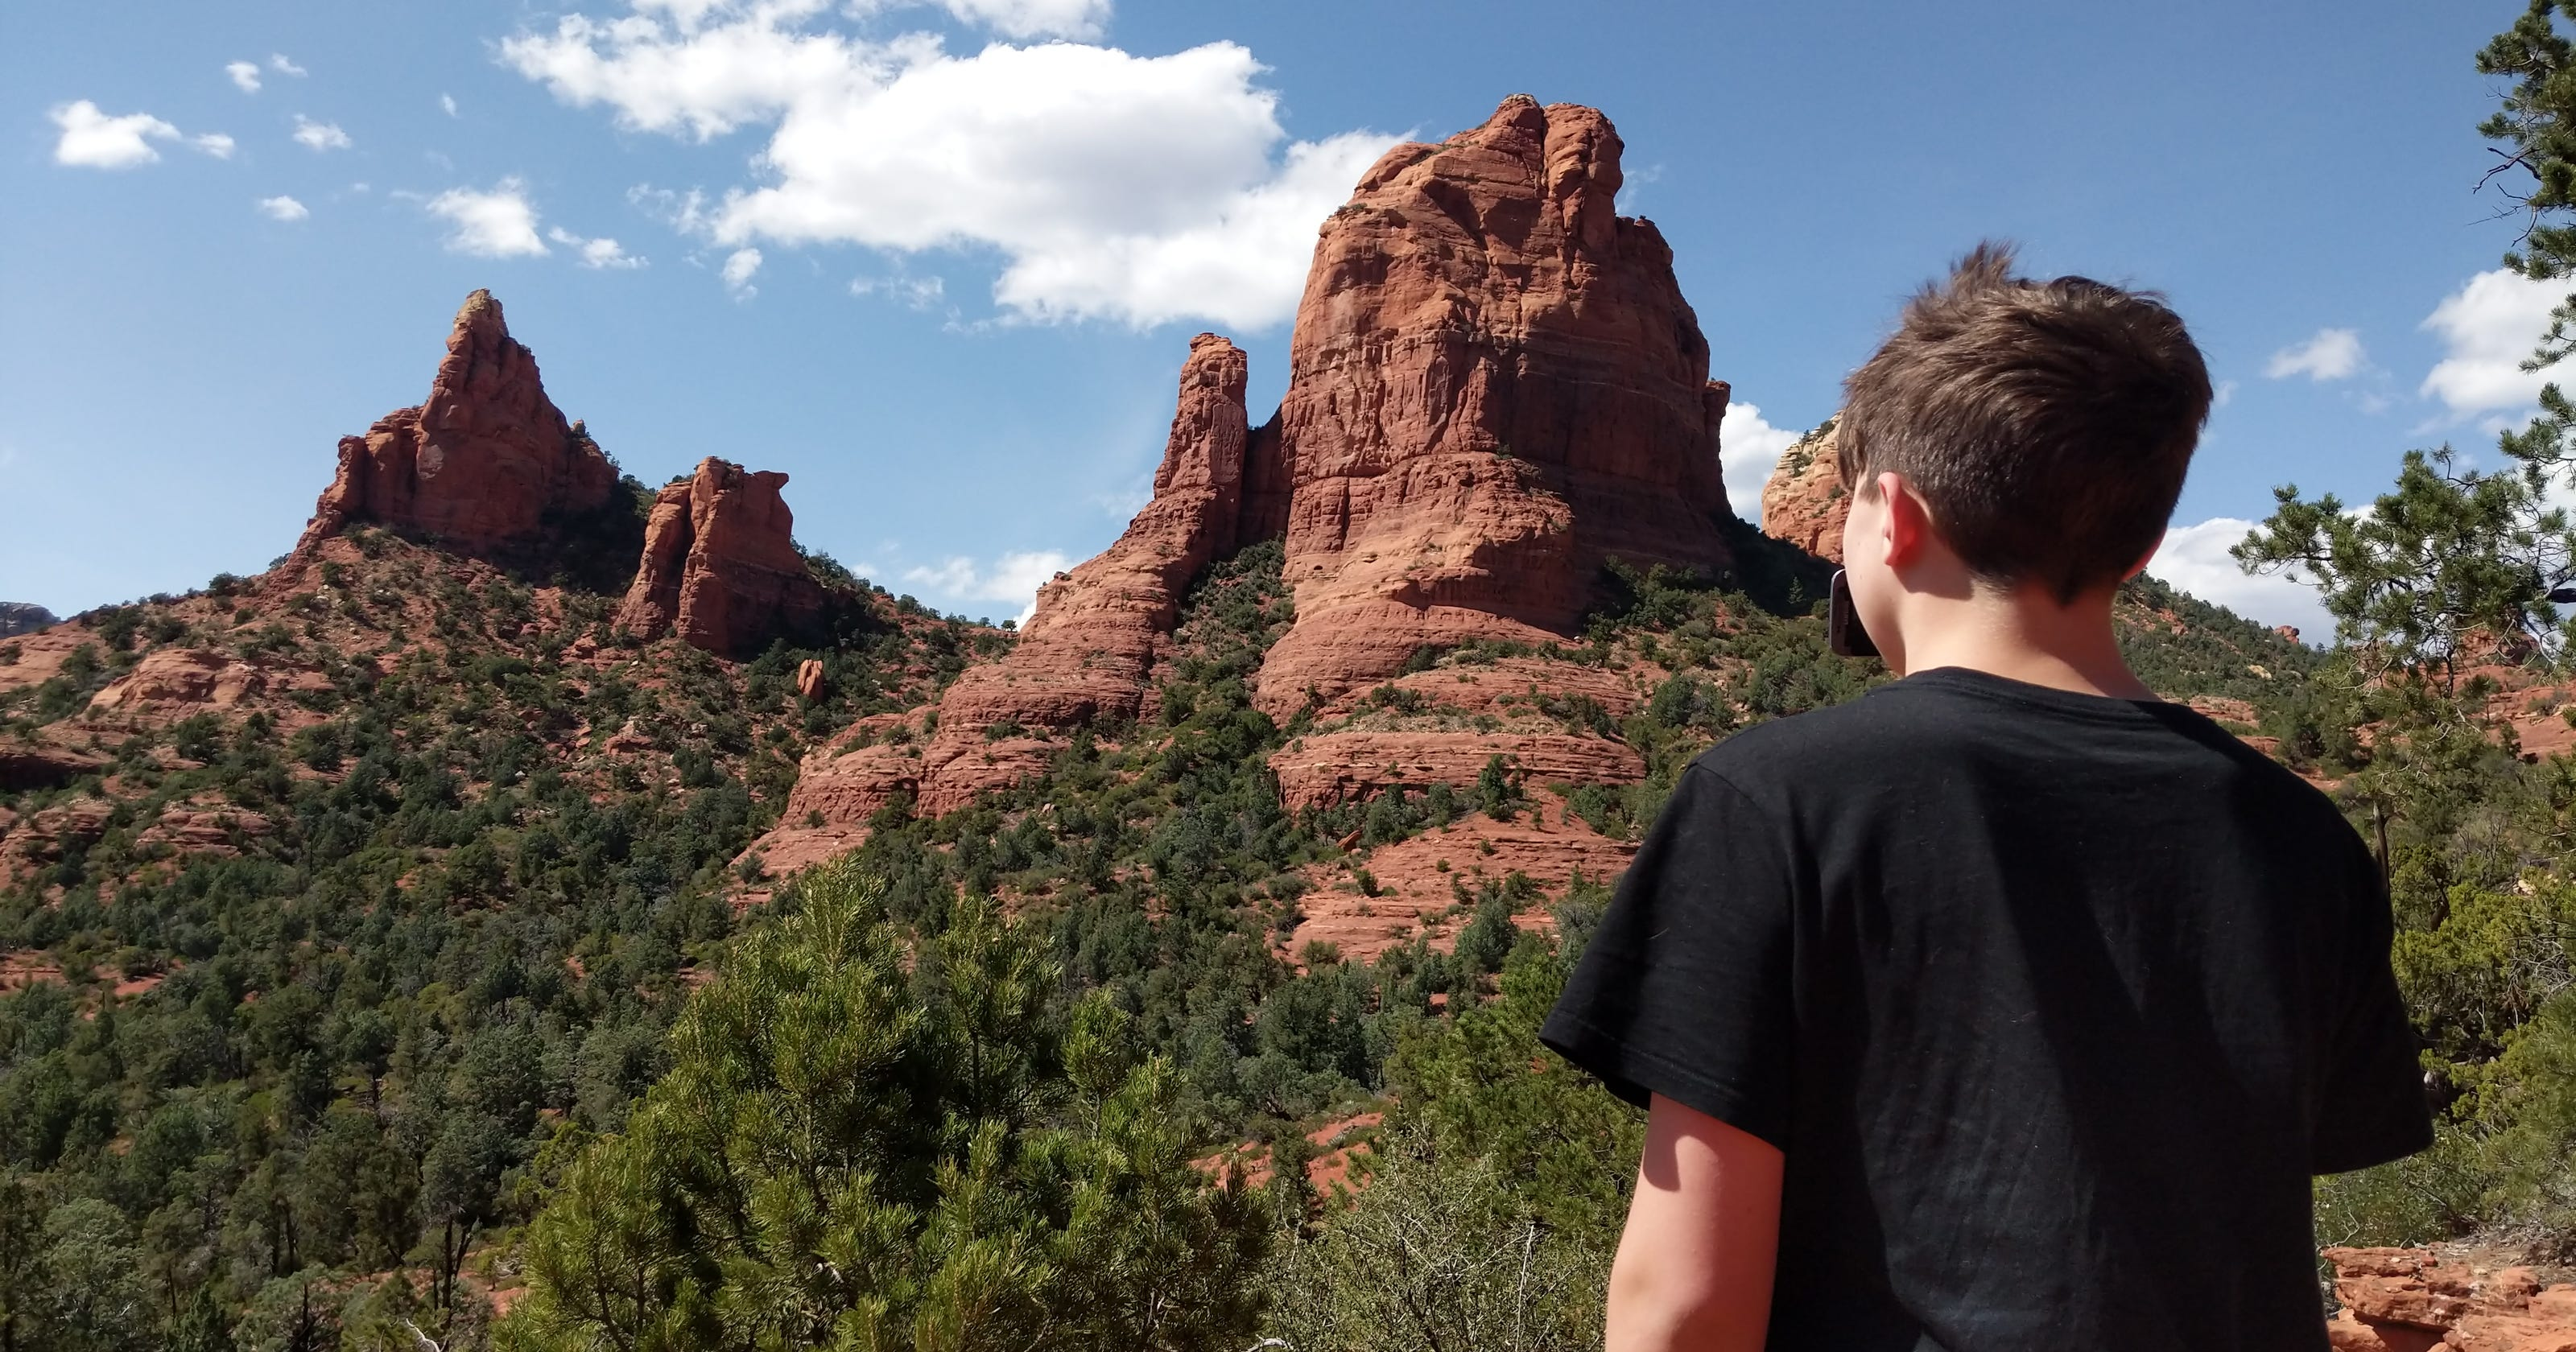 The most beautiful place on Earth? Sedona, sure, but there's